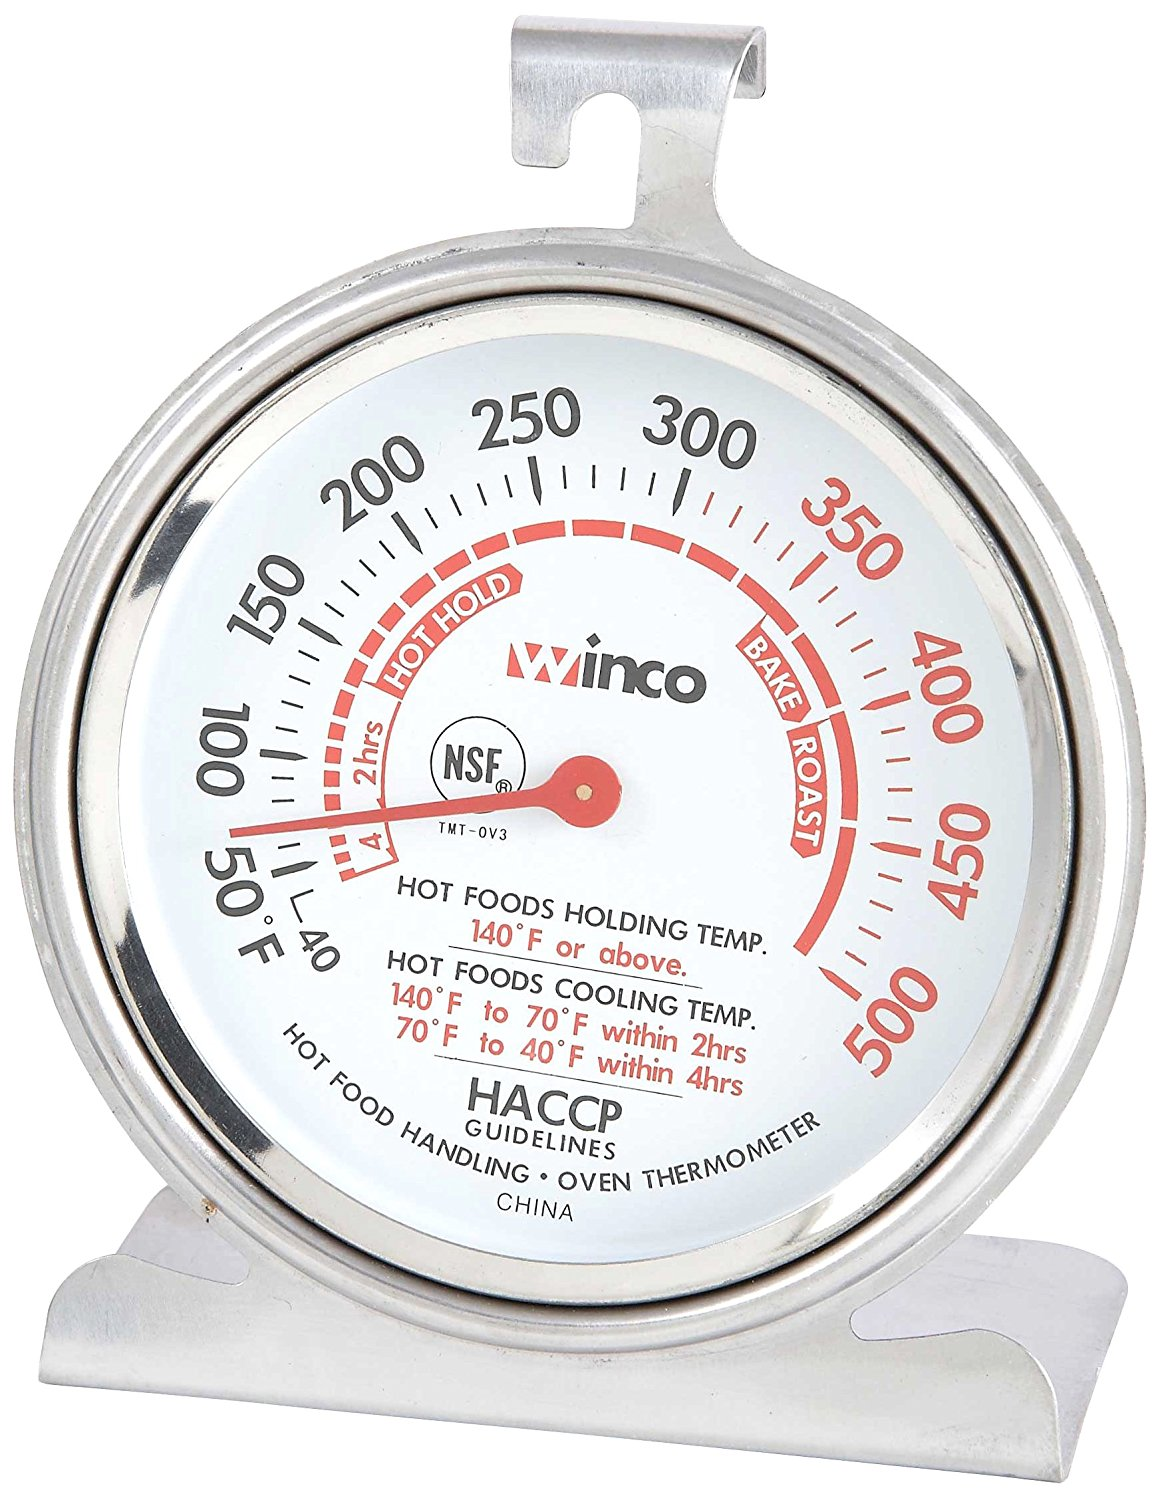 3-Inch Dial Oven Thermometer with Hook and Panel Base, Ship from USA,Brand Winco by